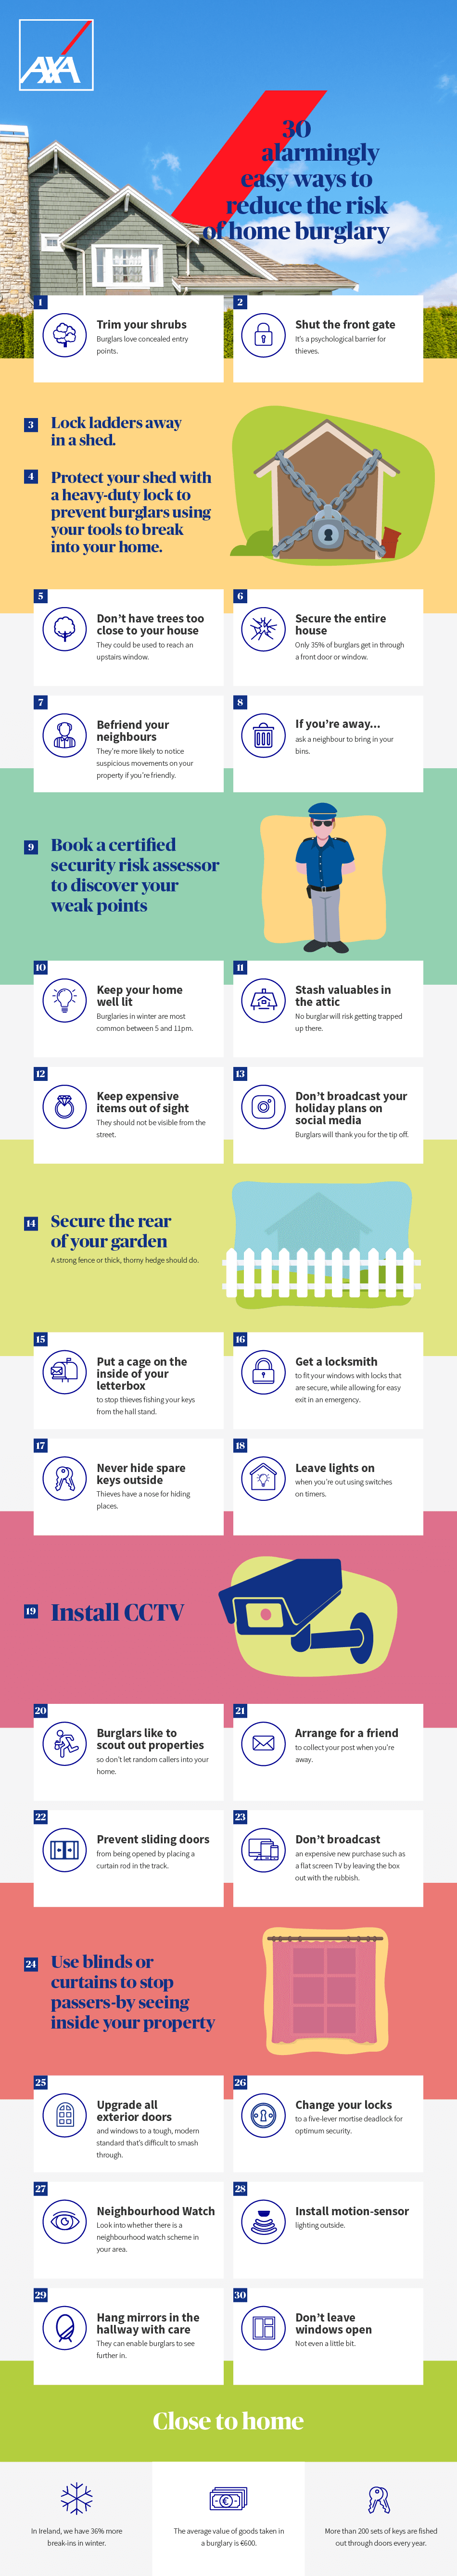 30 easy ways to reduce the risk of home burglary [infographic]